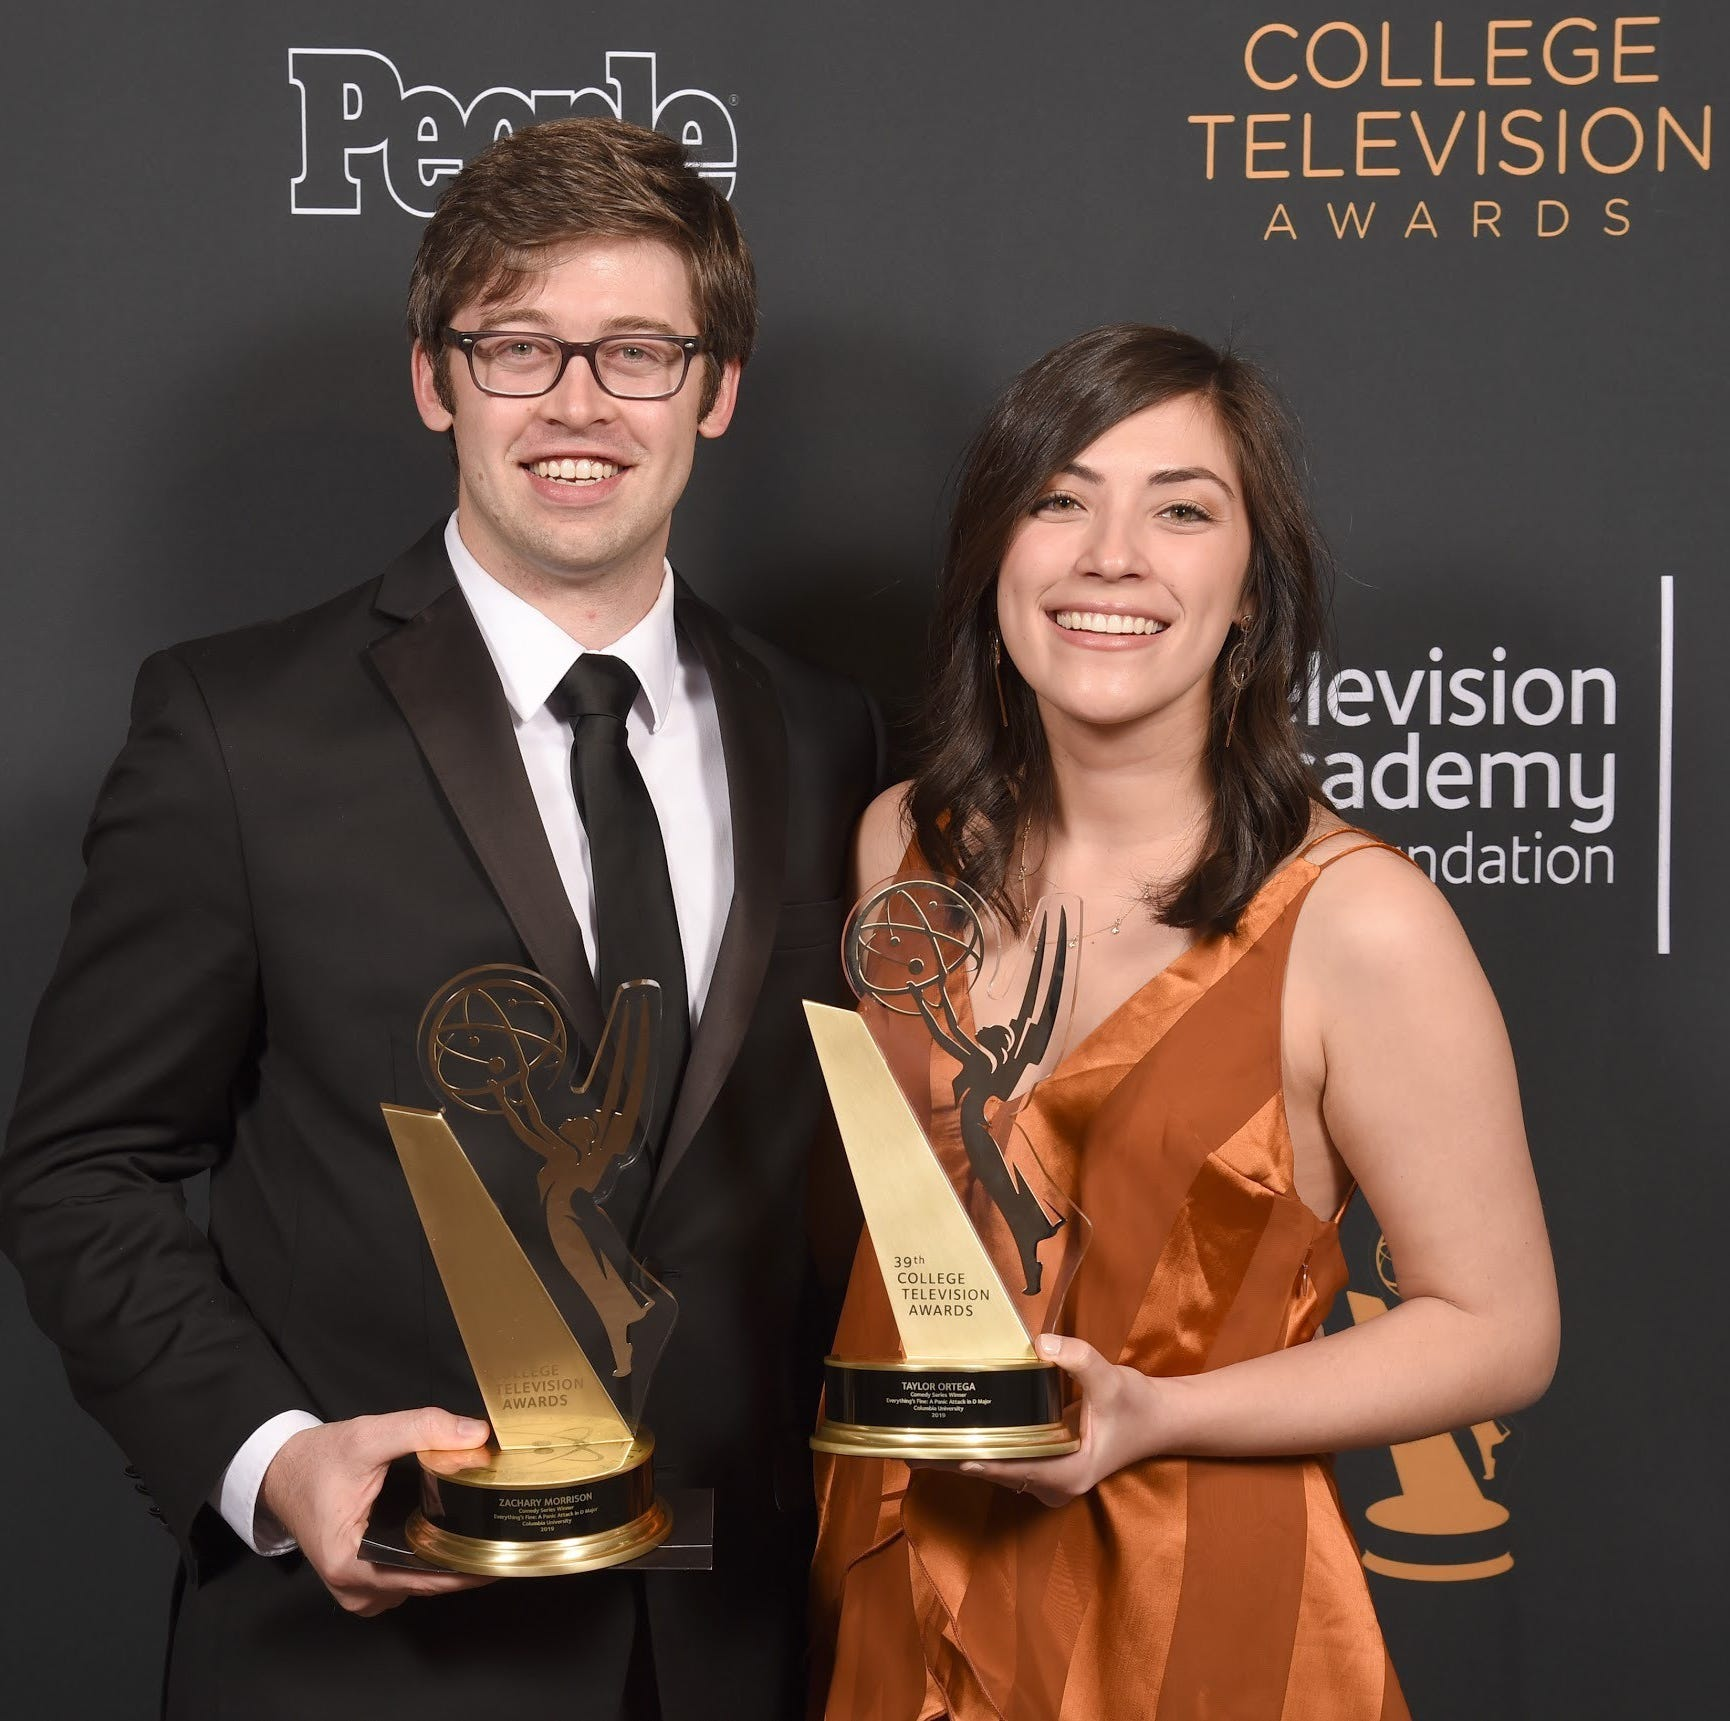 'Everything's (more than) Fine' for East Brunswick's College Emmy-winning Zack Morrison